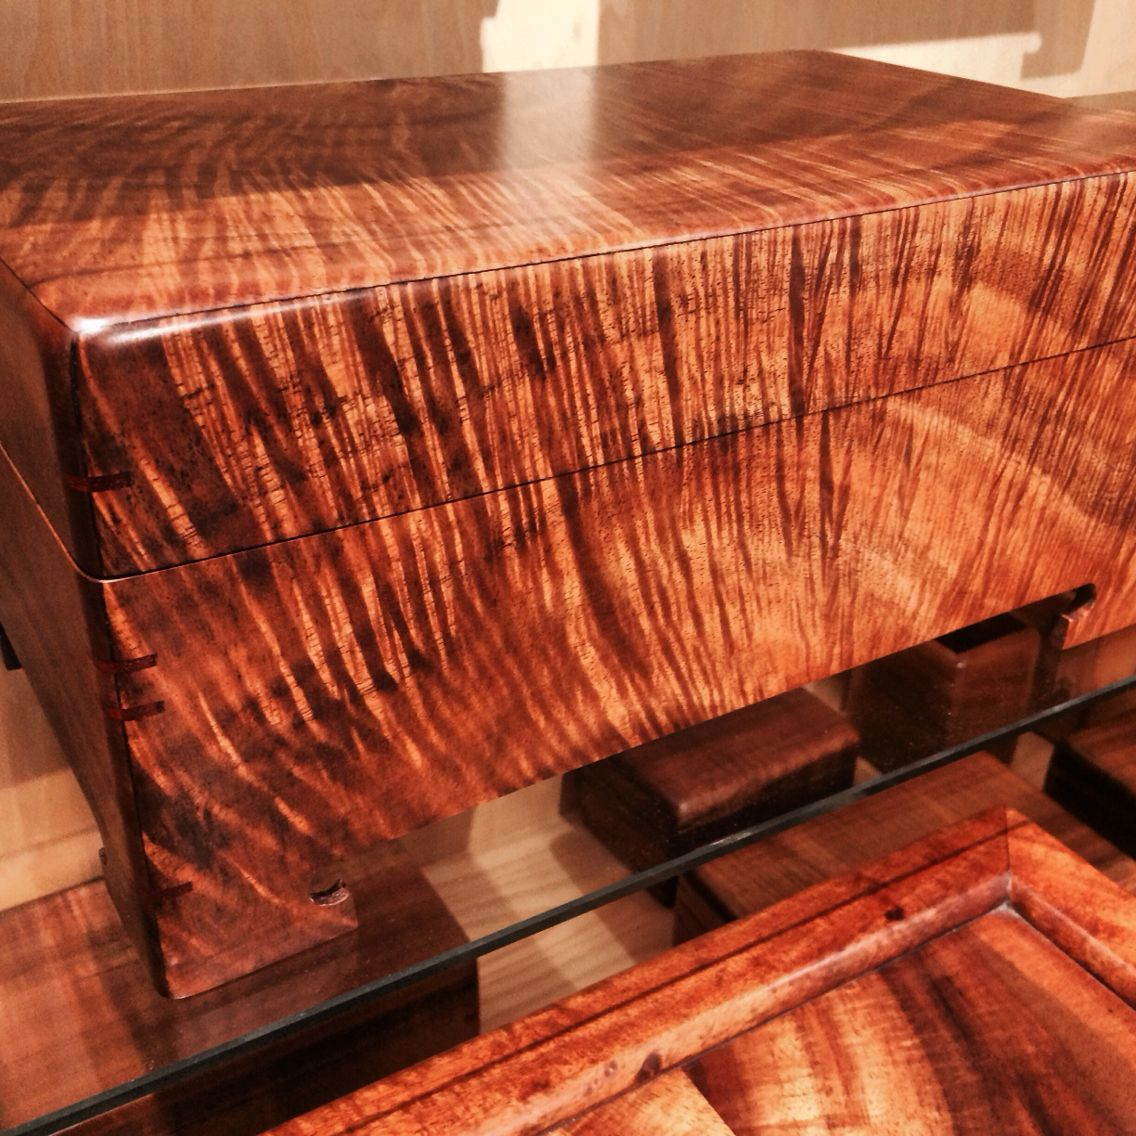 Koa Box Made In Hawaii At Www Martinandmacarthur Com Woodworking Projects Woodworking Woodworking Box